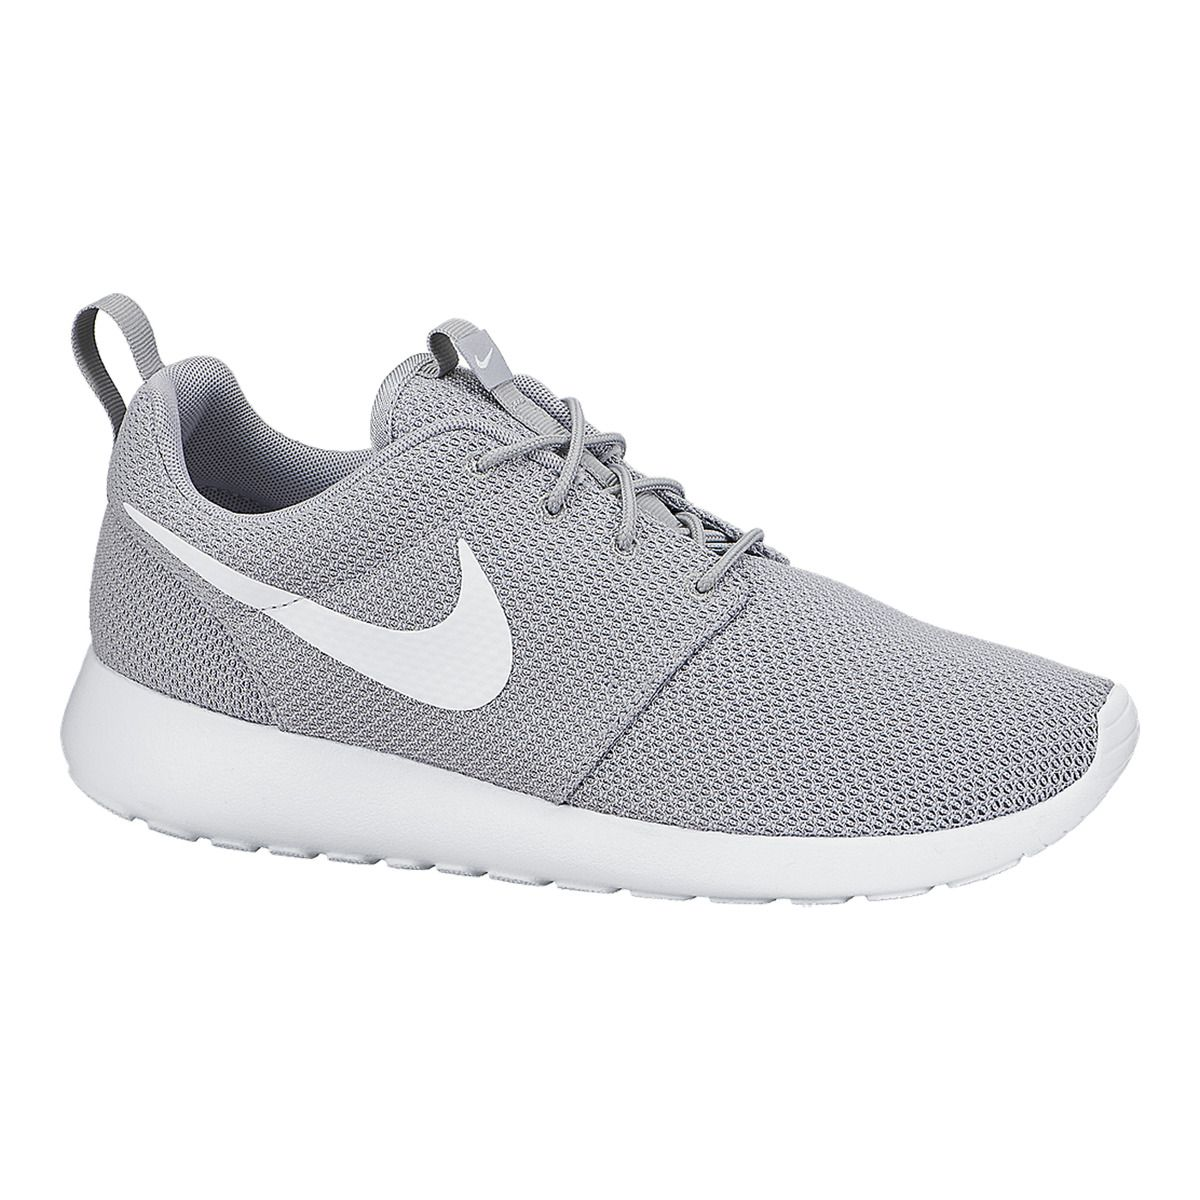 differently 3358e 5f3ff Zapatillas casual de hombre Roshe One Nike